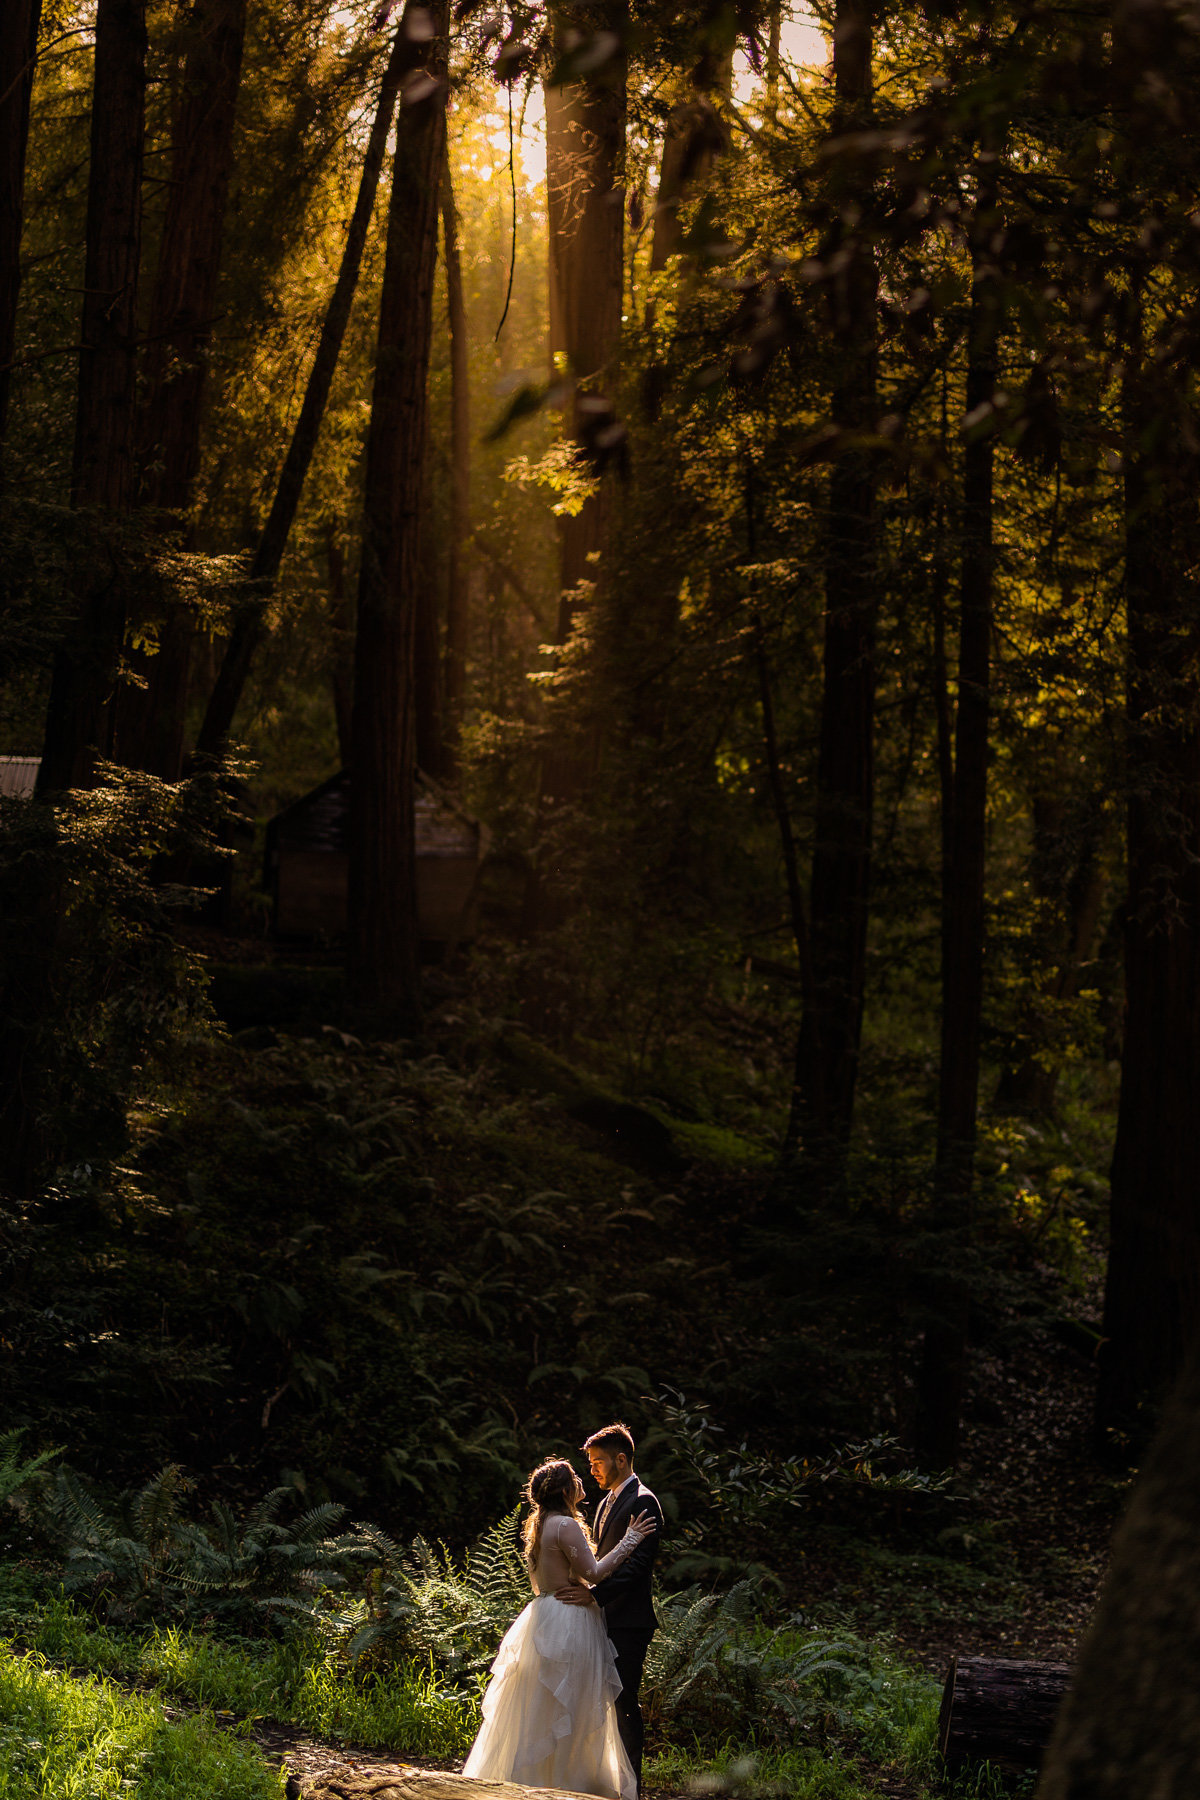 Bride & groom embrace in the Redwood Forest before their Big Sur wedding while a golden ray of sunlight shines on them.